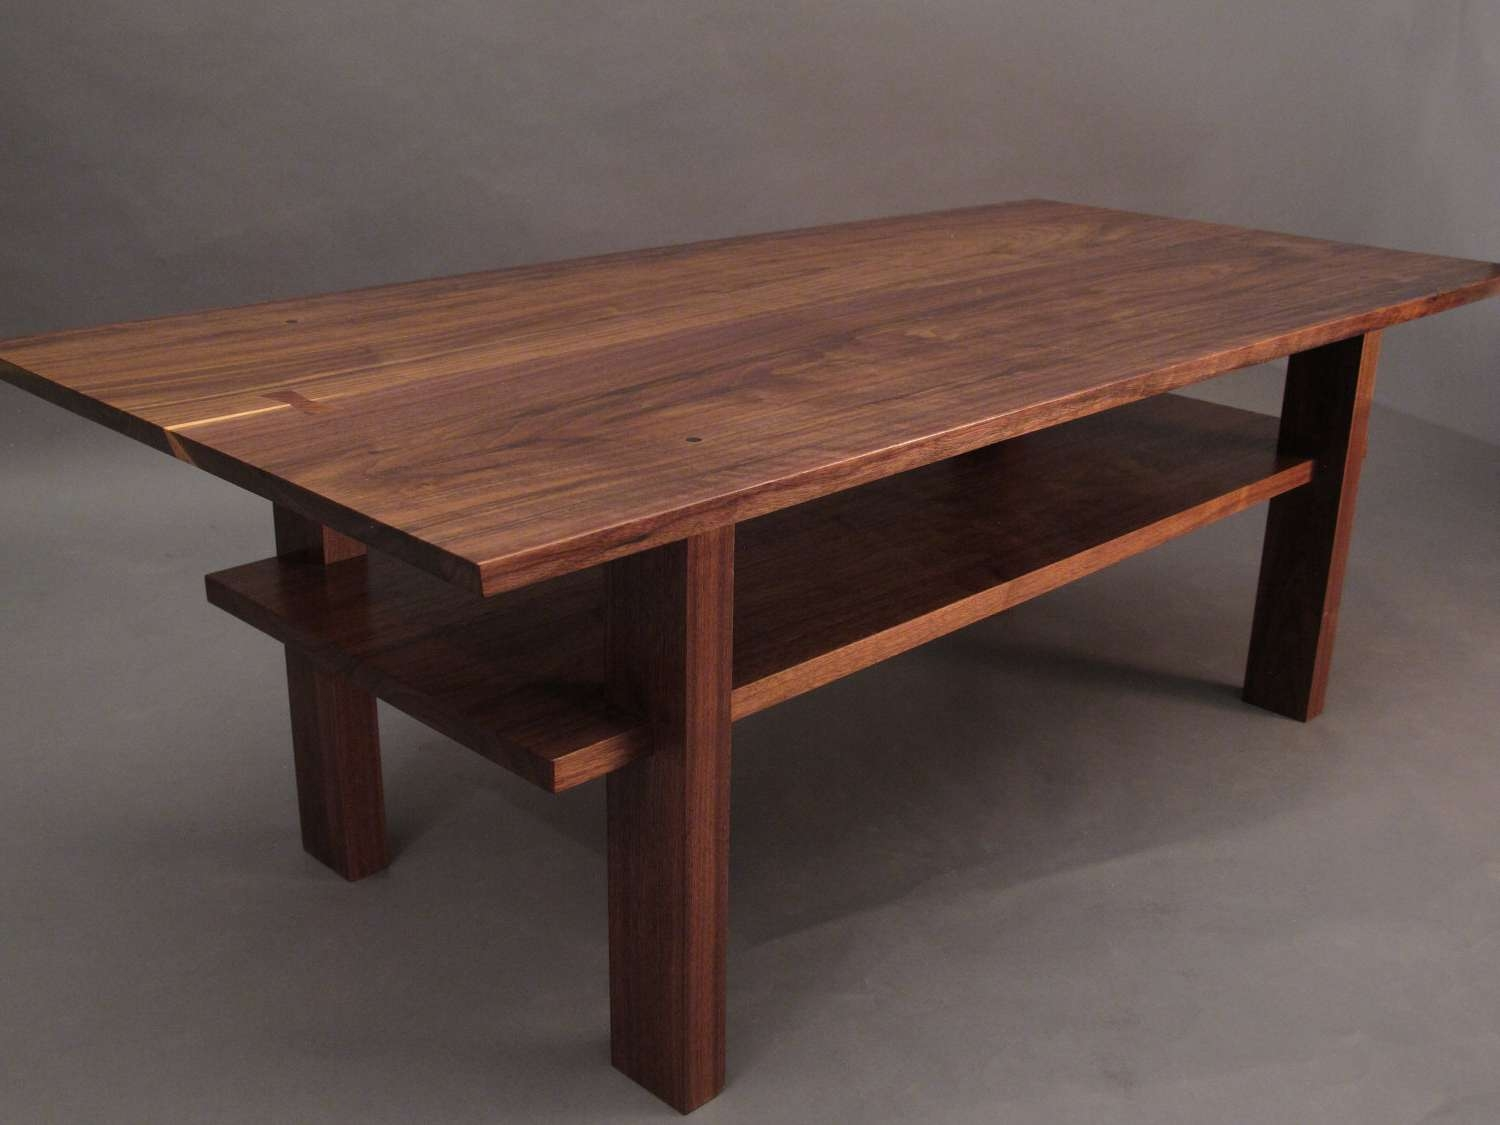 Recent Narrow Coffee Tables Inside Walnut Coffee Table Small Wood Tables For Living Room Narrow (View 4 of 20)